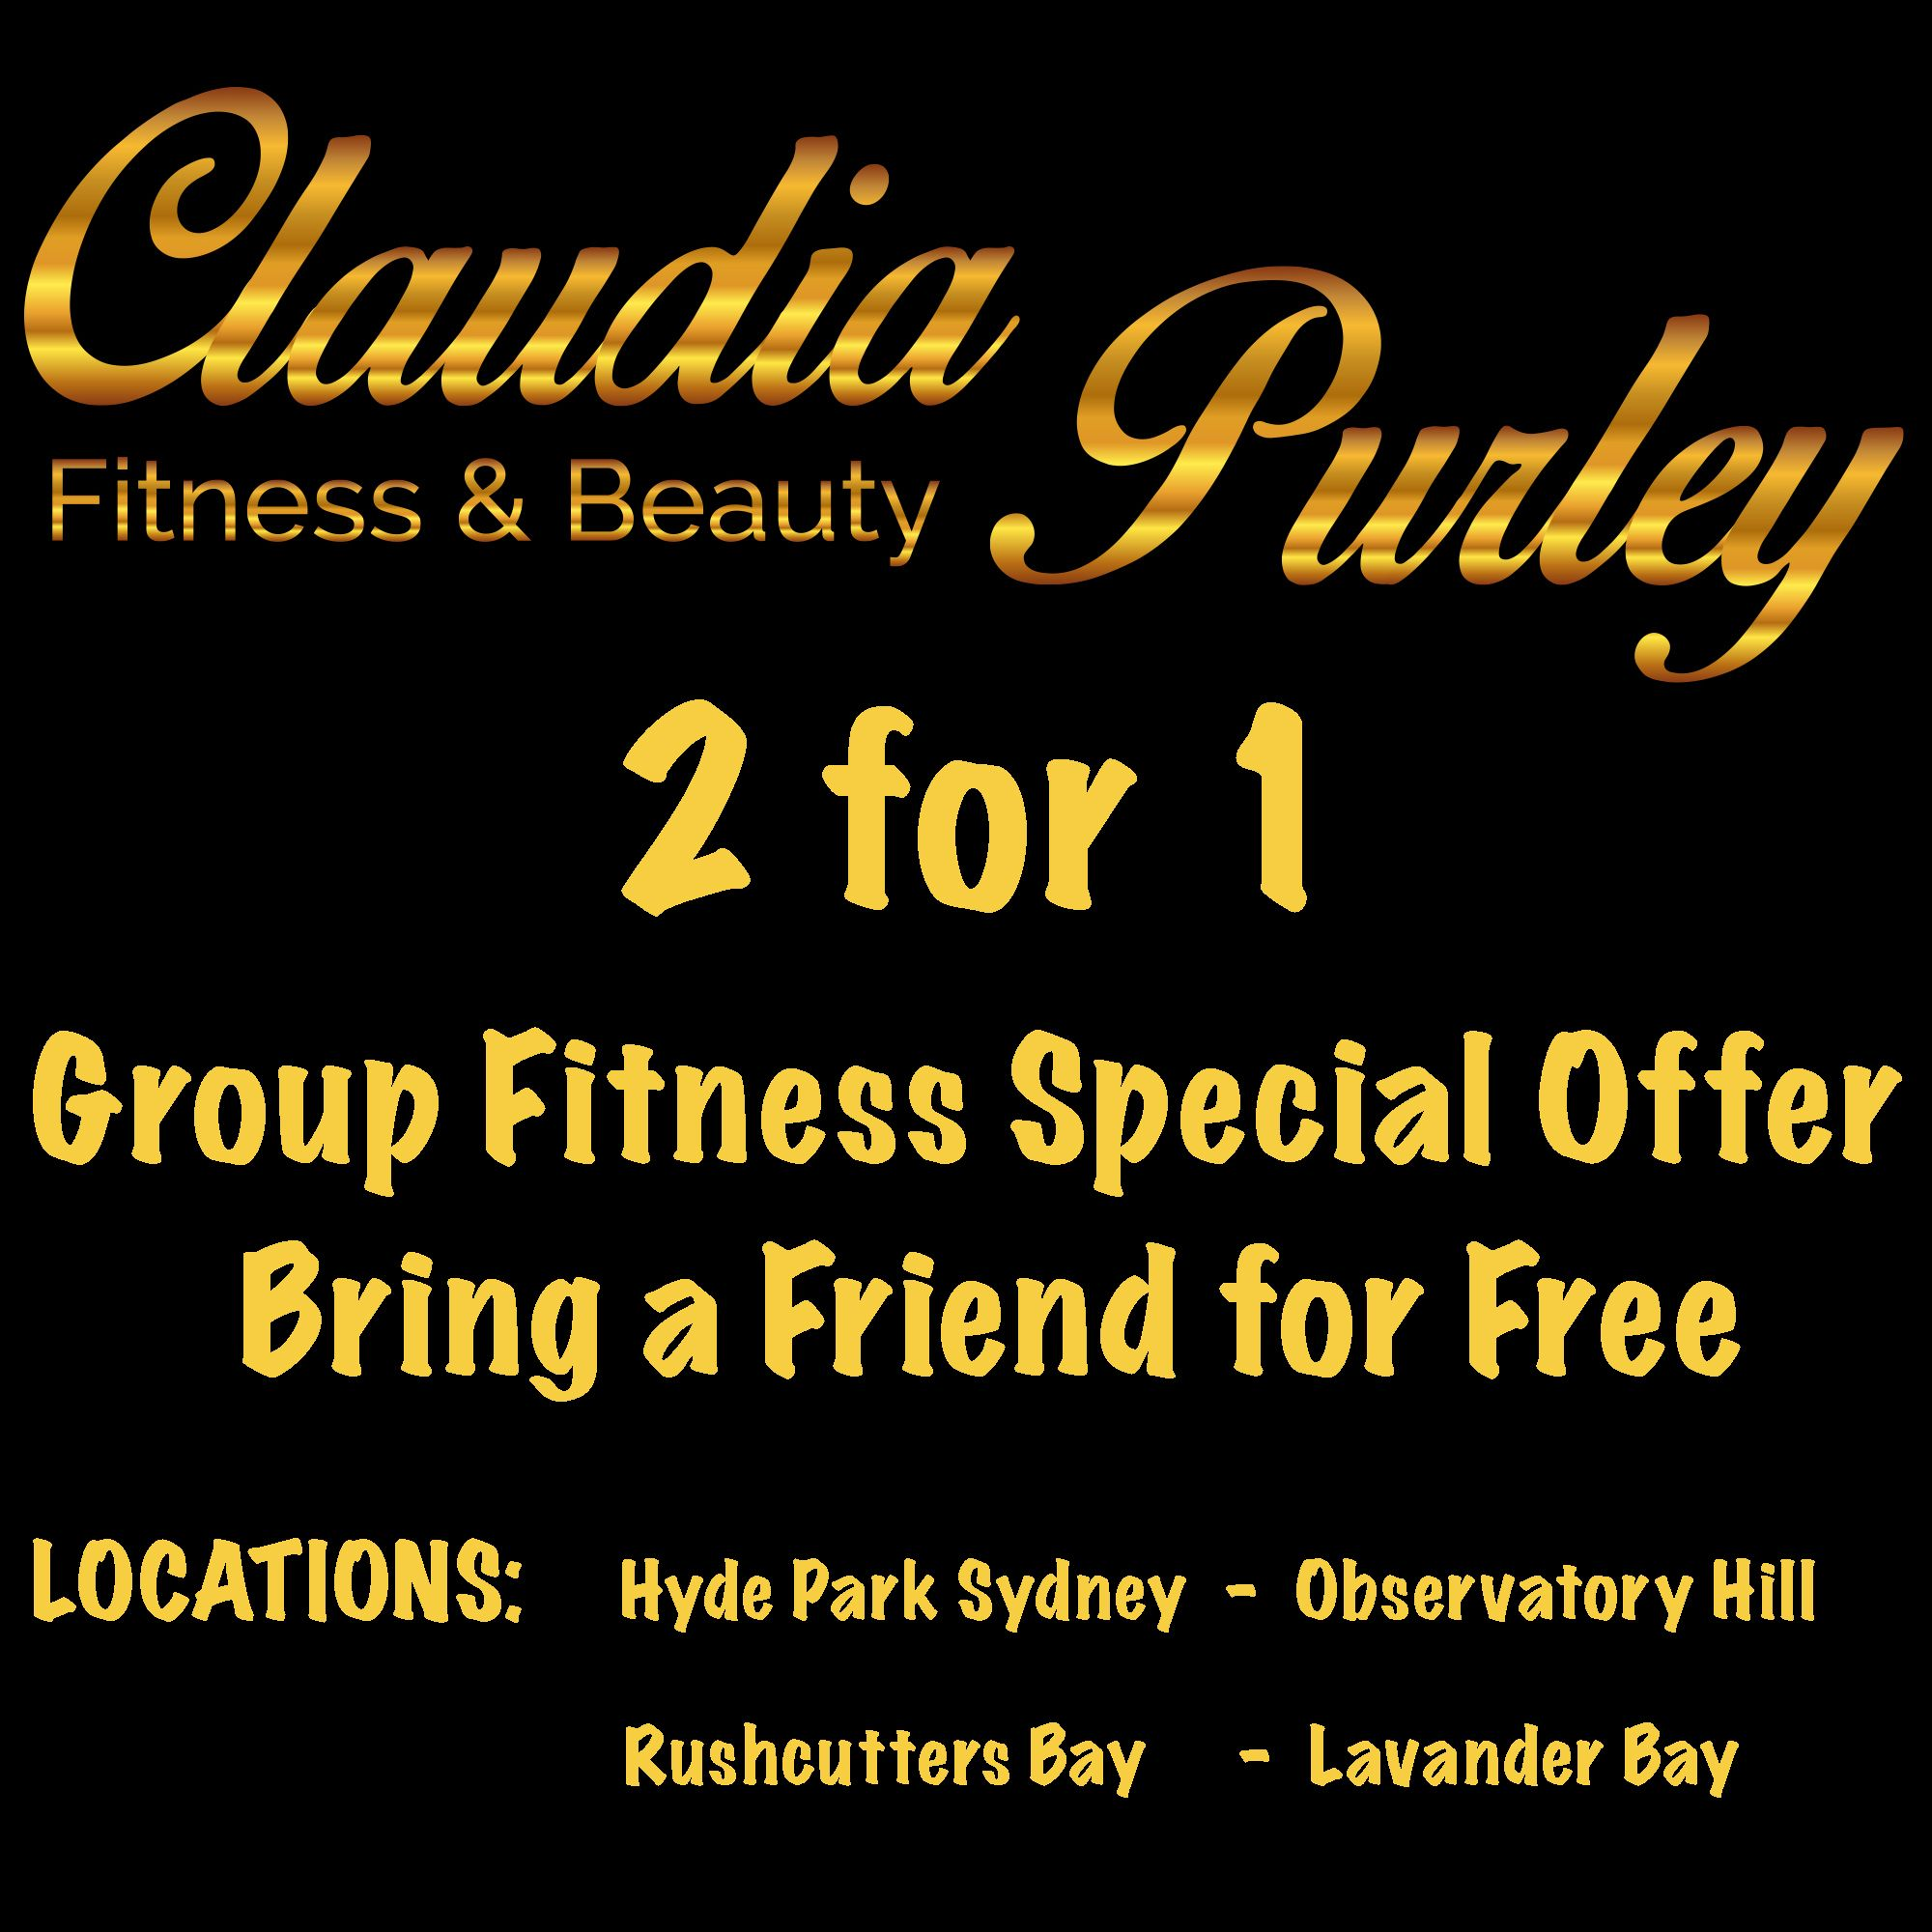 Sydney Group Fitness Meetup